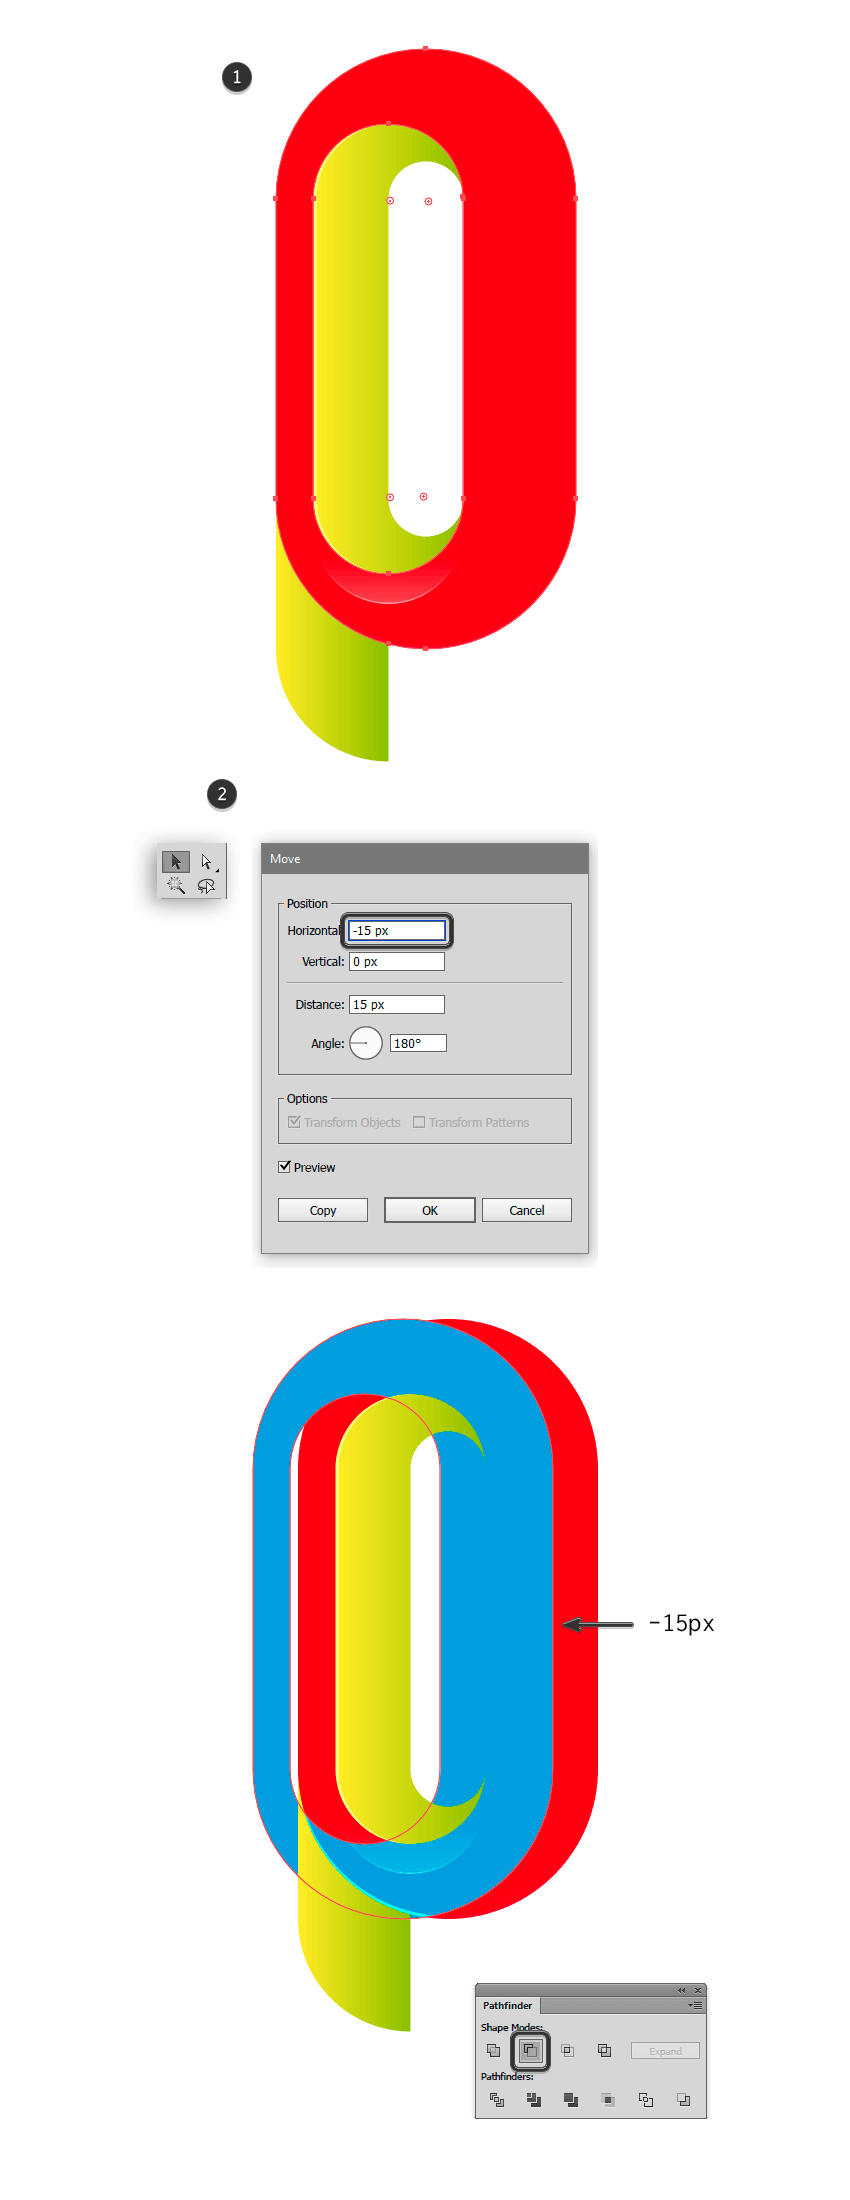 Duiplicating the outer ring of letter P to create a new highlight